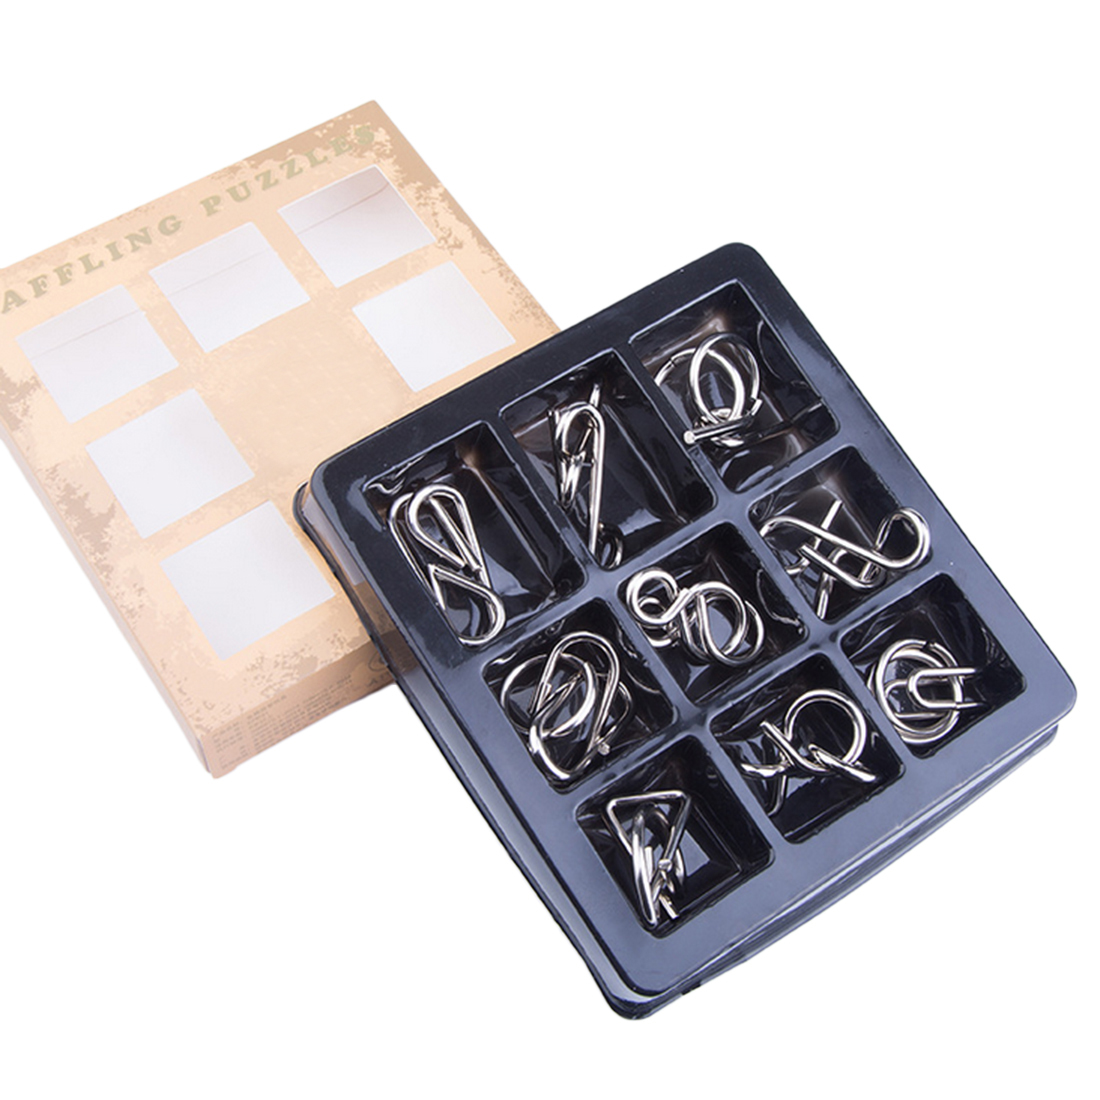 4 Difficulty Levels 9pcs Metal Montessori Puzzle Wire  Mind Brain Teaser Puzzles For Children Adults Anti-Stress Reliever Toys